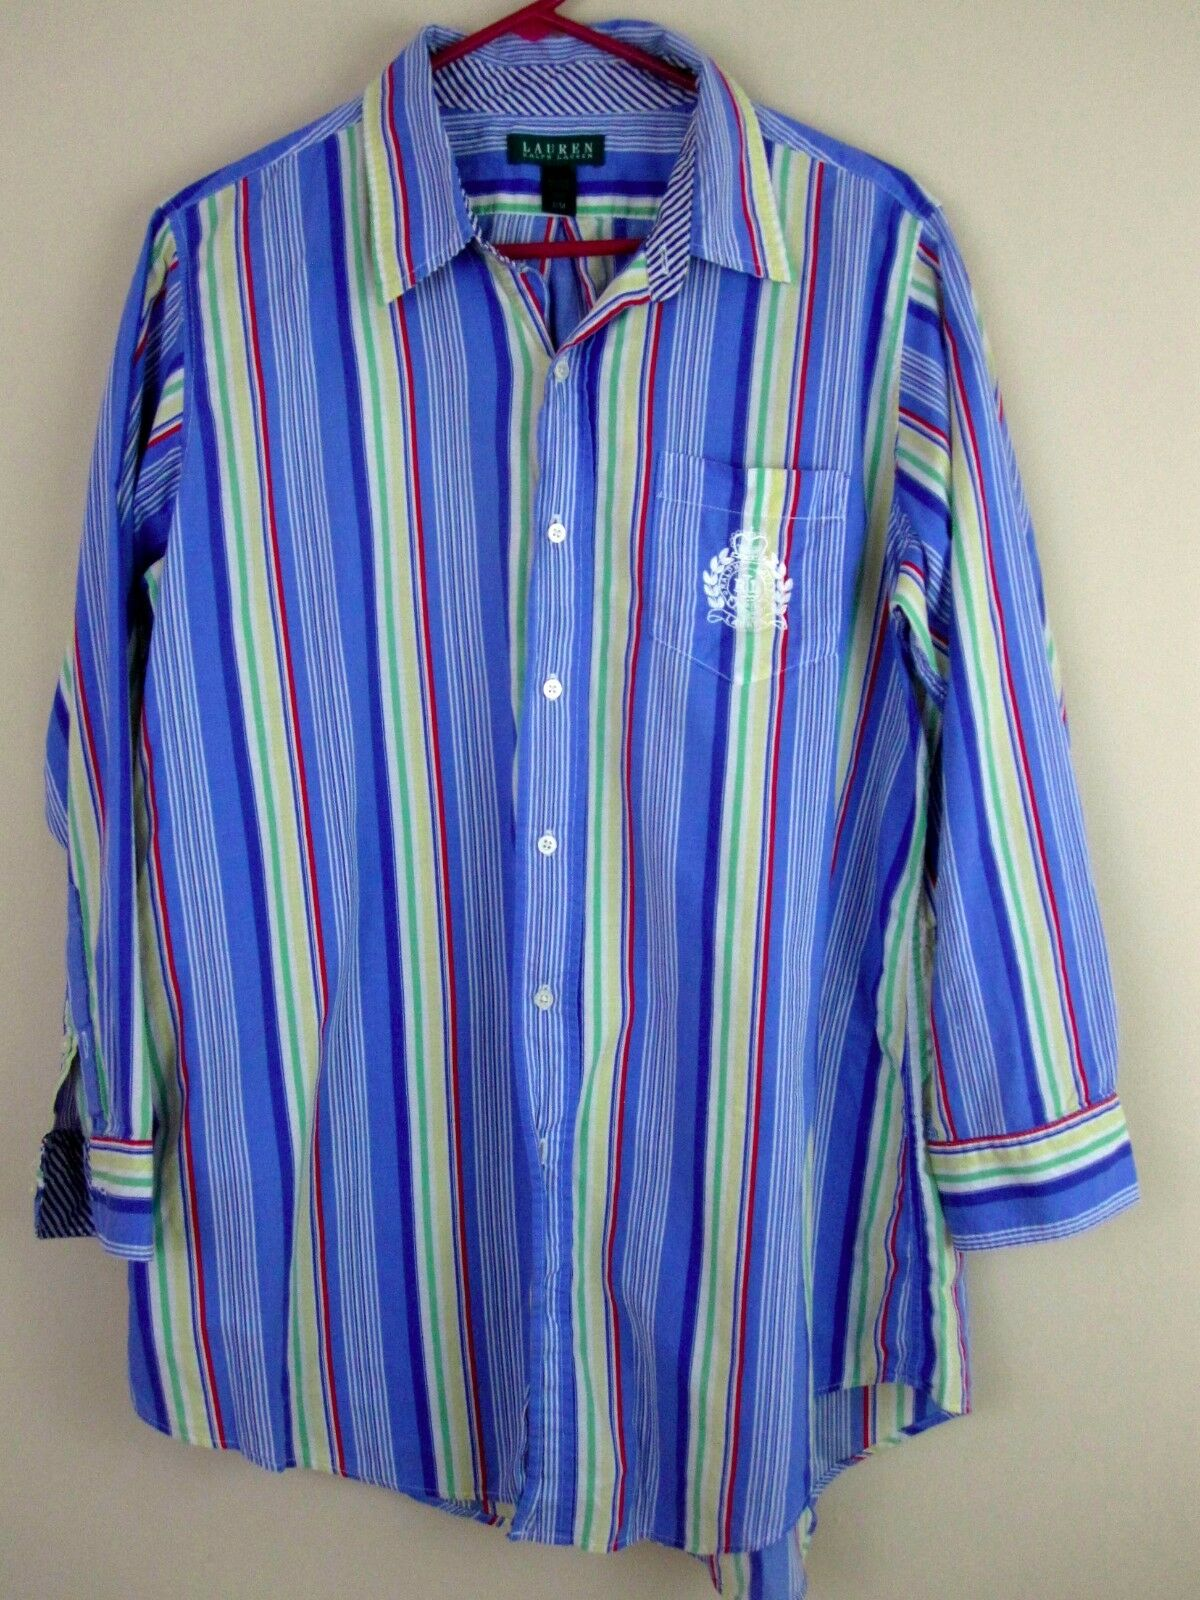 Ralph Lauren Shirt Small bluee Striped Multi colord Crest Logo Mens Button Down